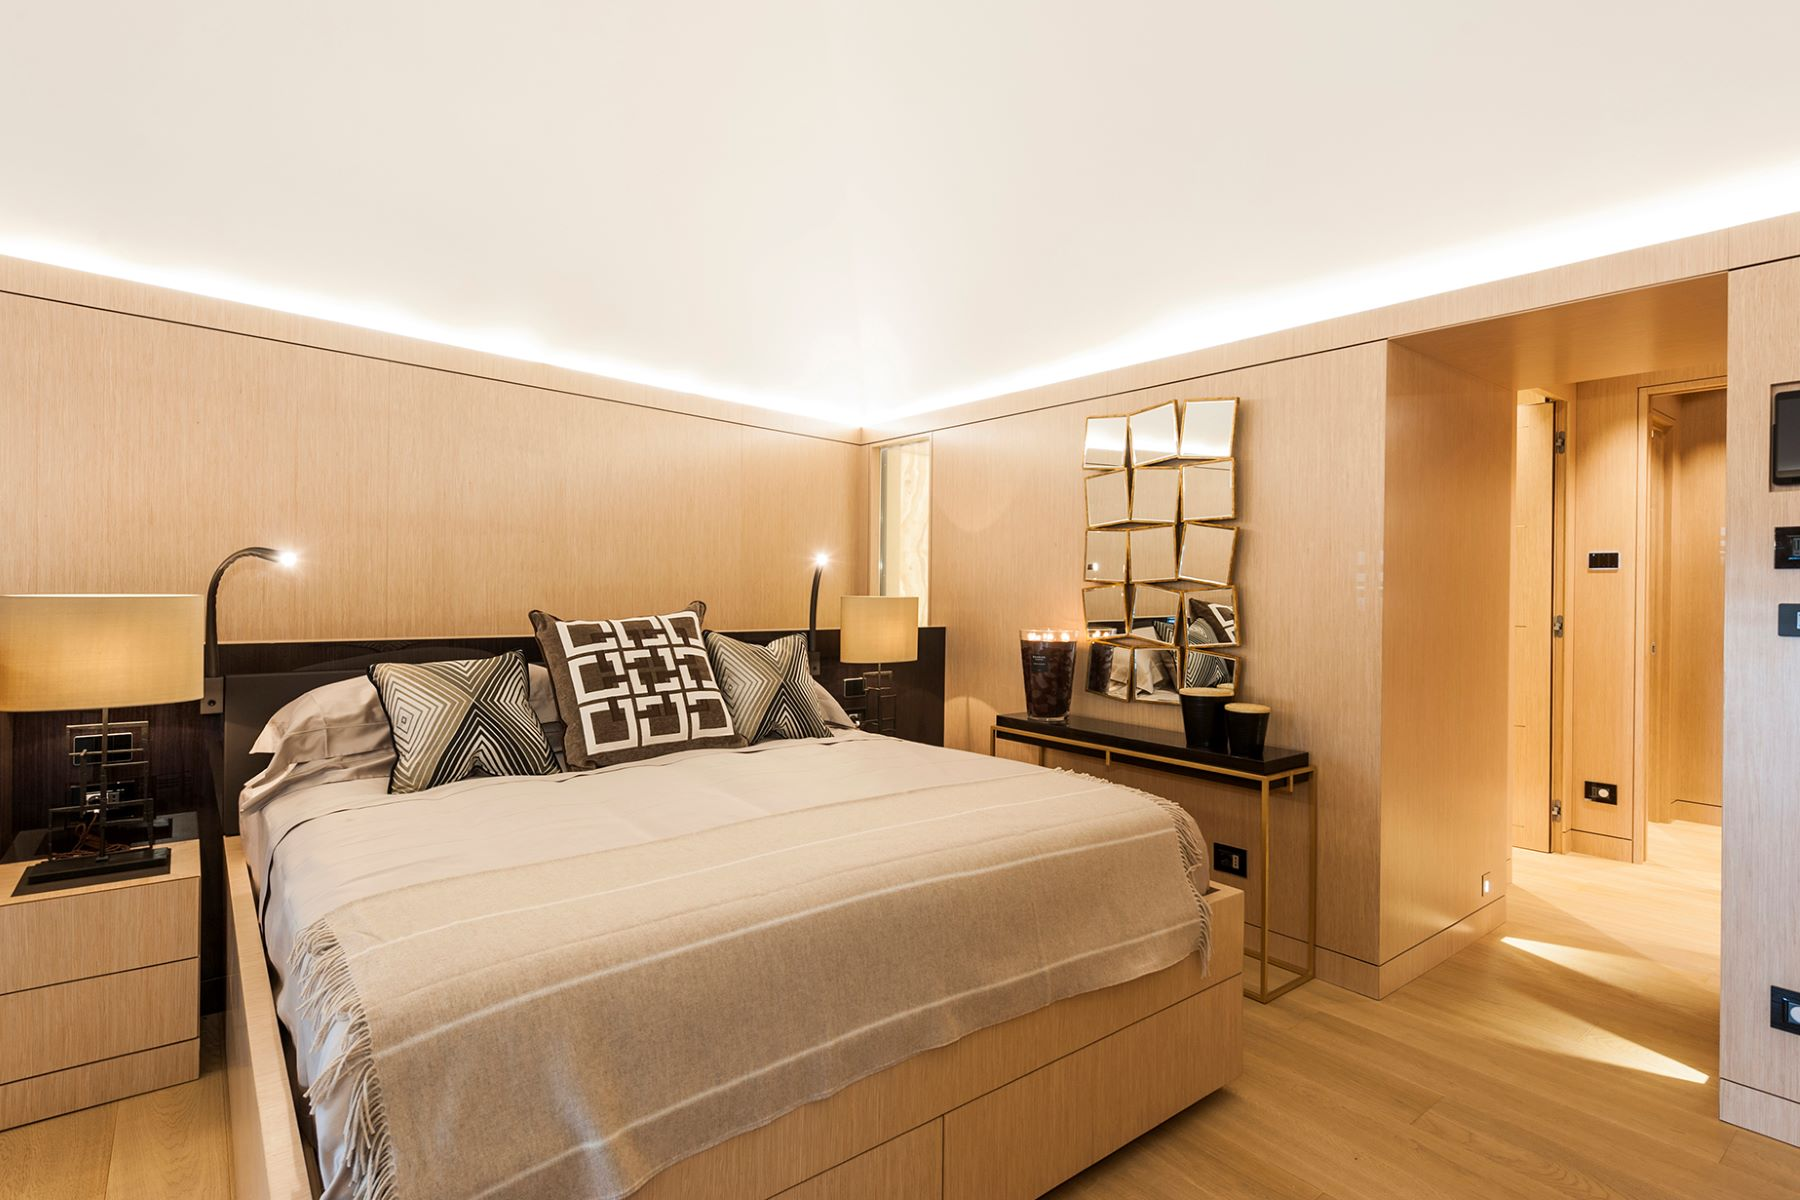 Additional photo for property listing at Luxurious loft in Piazza Borghese  Rome, Rome 00186 Italy